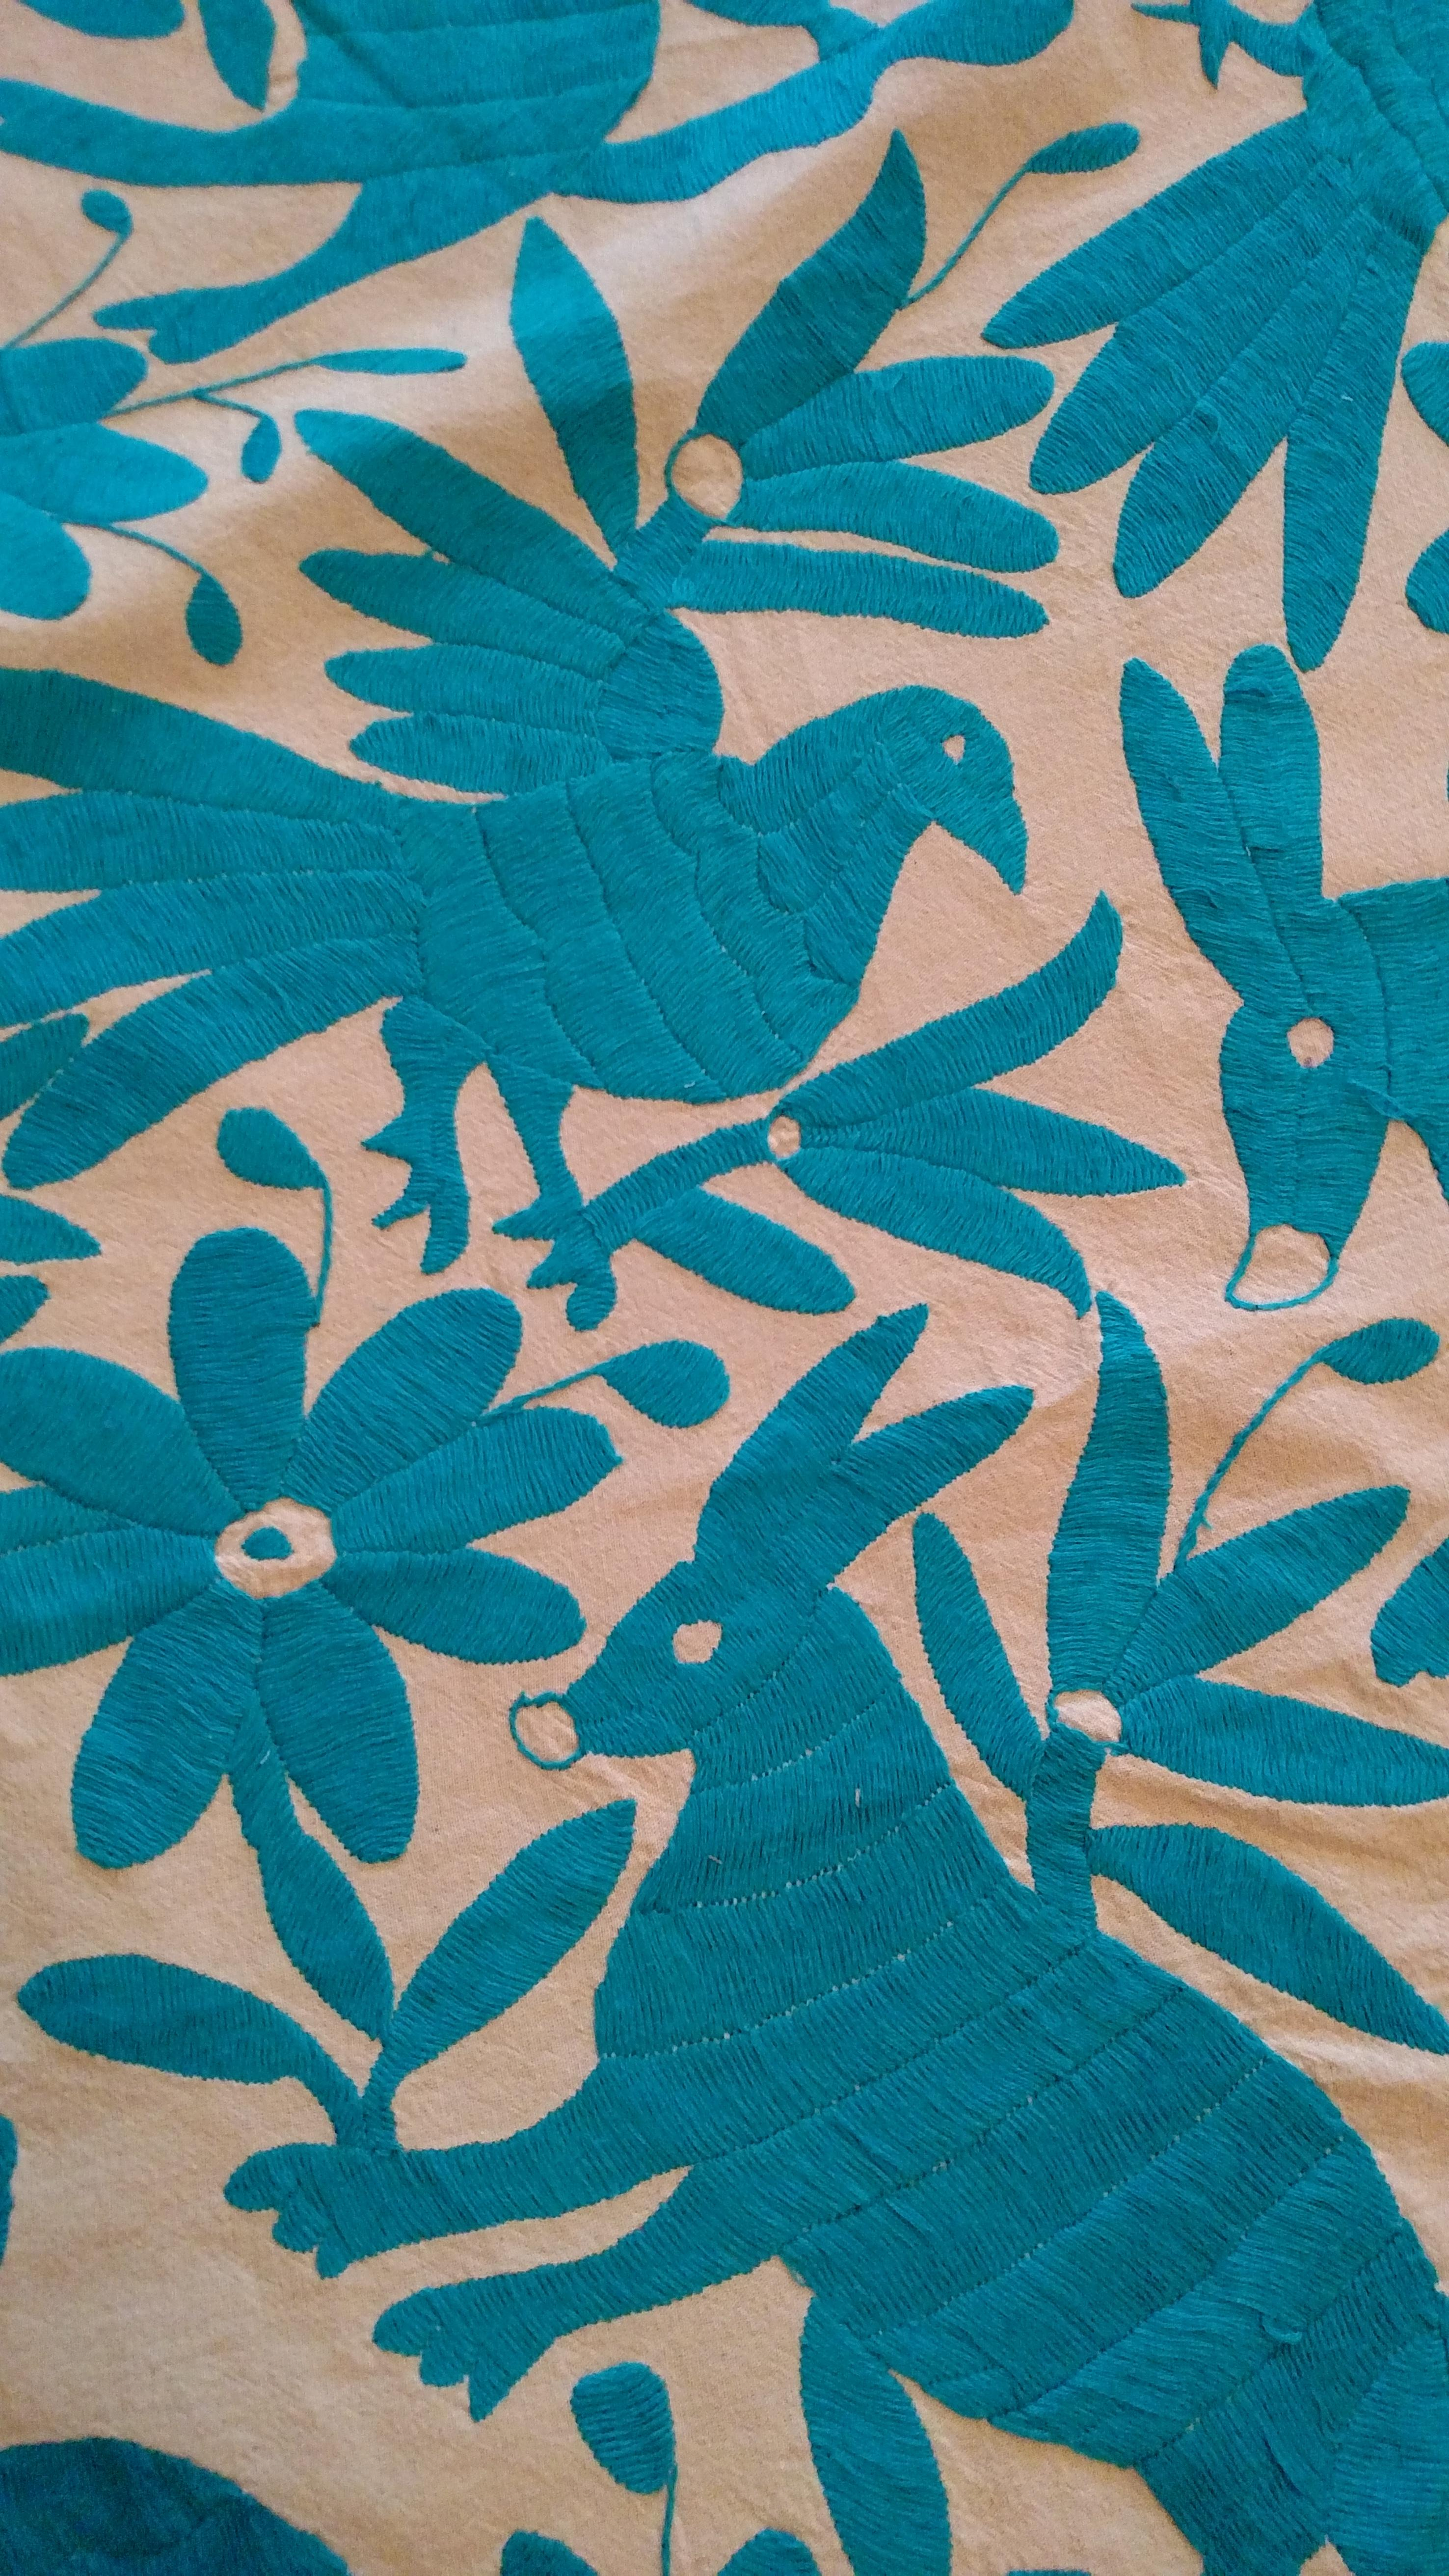 Blue Otomi Round Tablecloth Handmade In Mexico   Image 3 Of 3